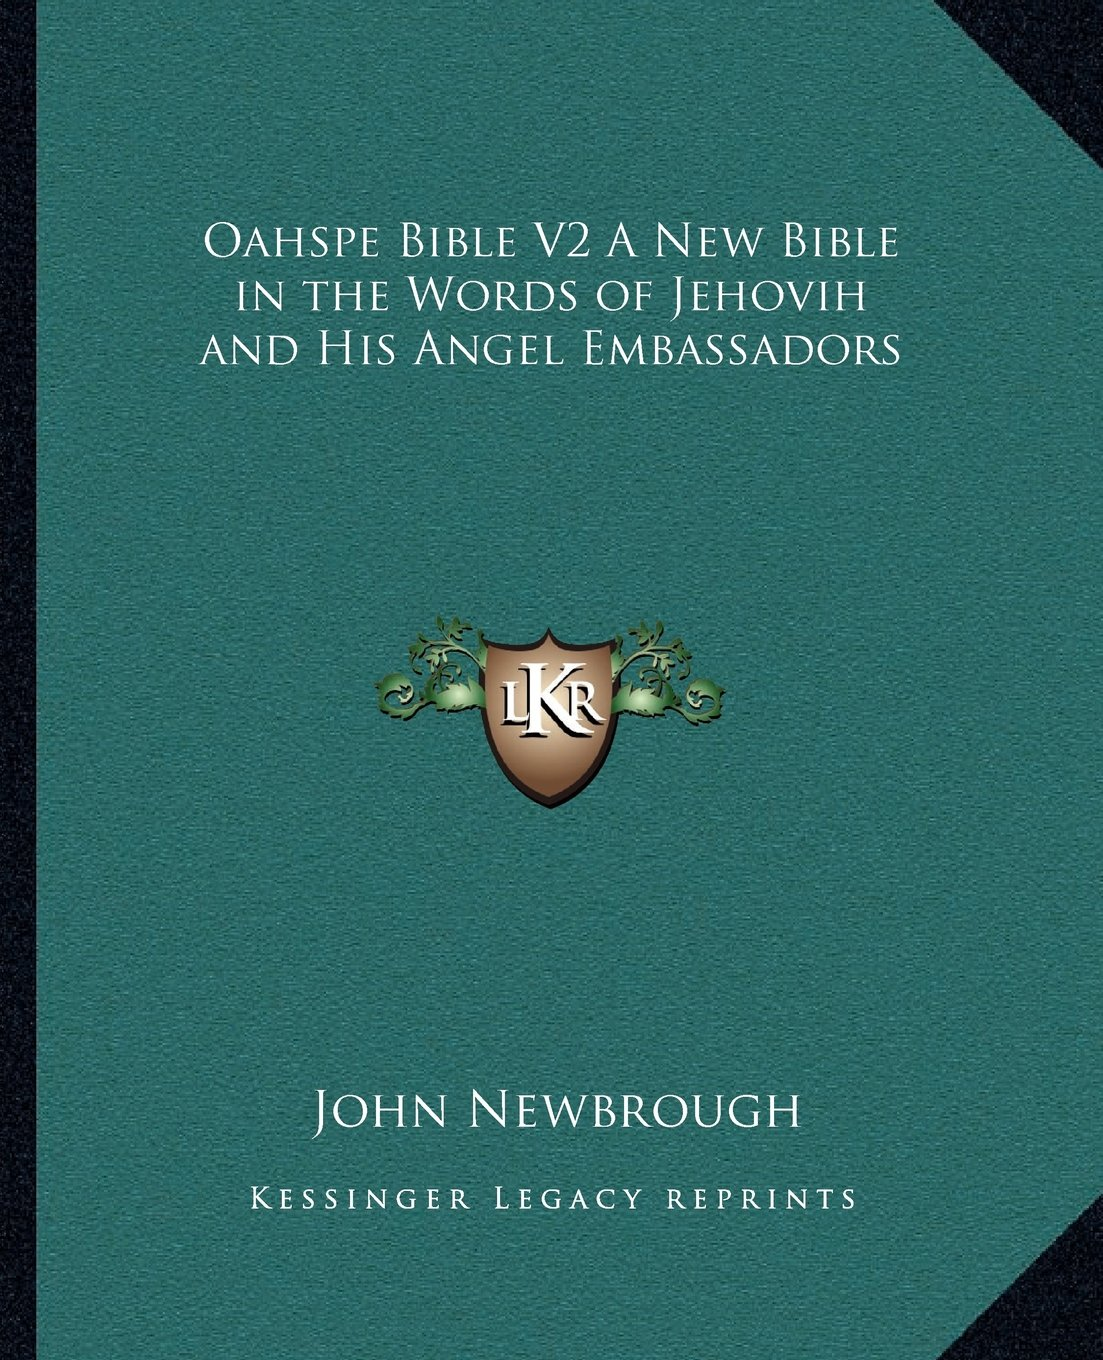 Download Oahspe Bible V2 A New Bible in the Words of Jehovih and His Angel Embassadors pdf